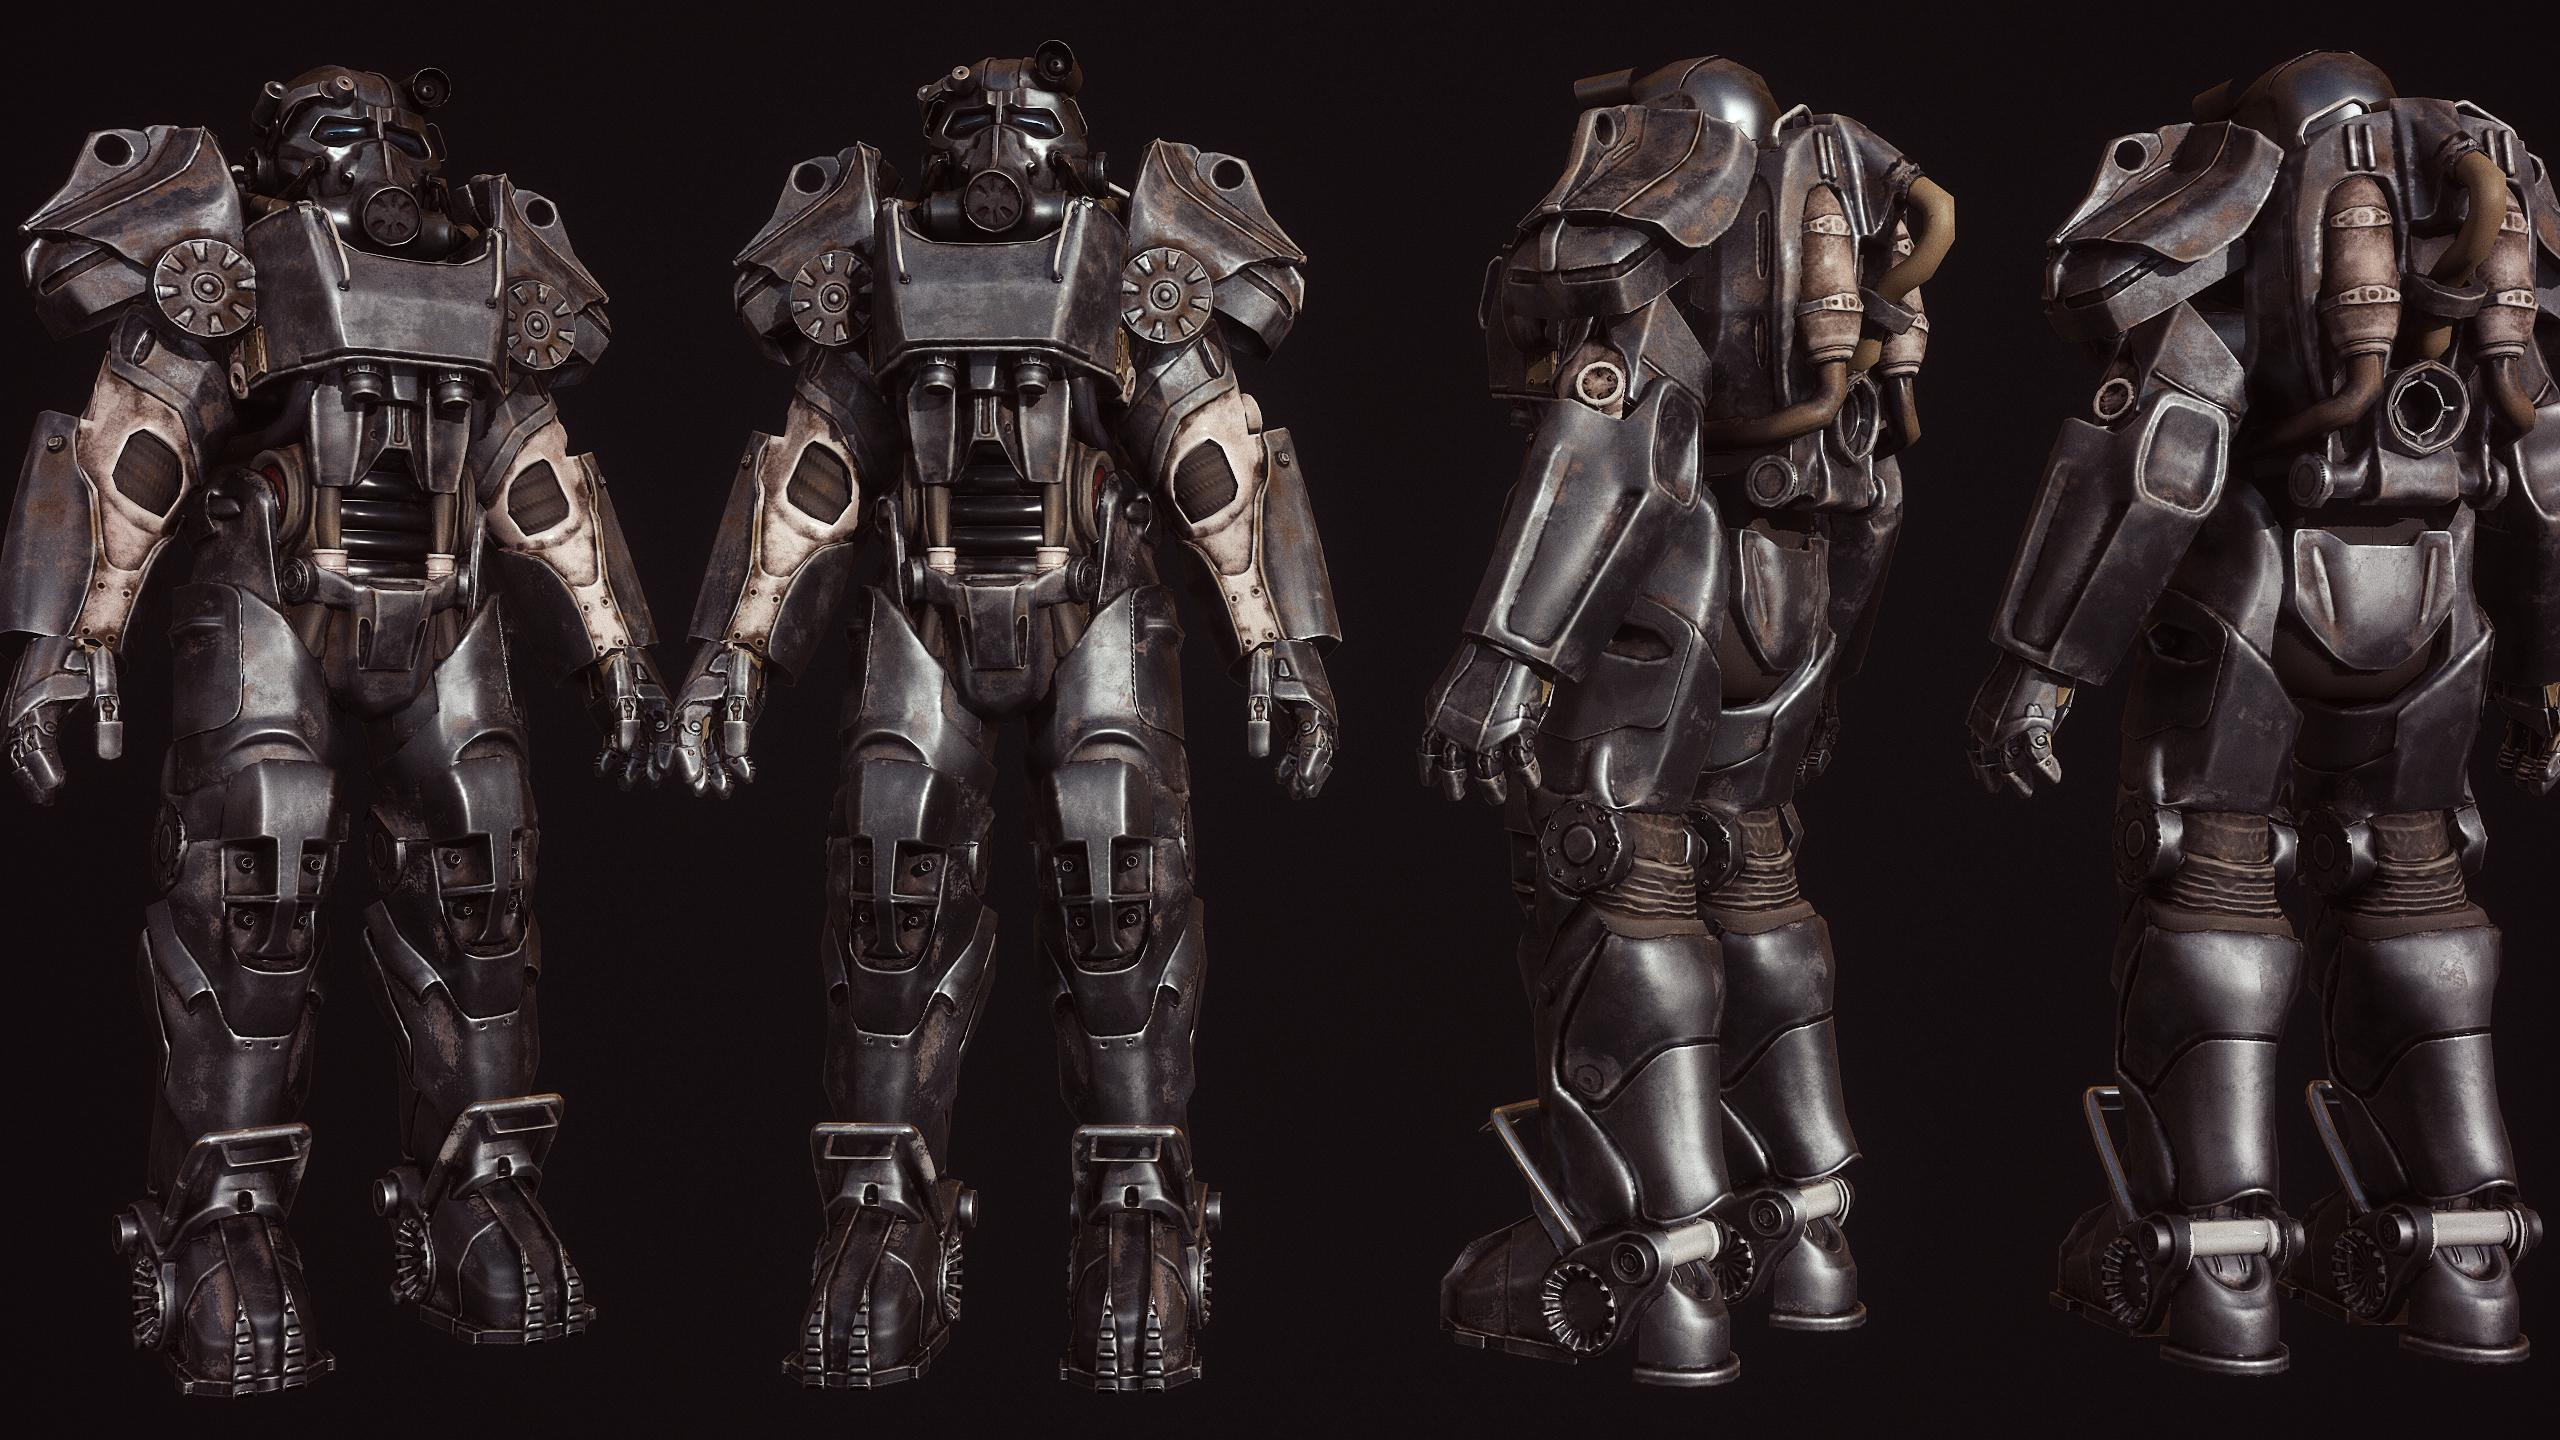 Free Download Rss Feed Report Content Fallout 4 Ripped Power Armor